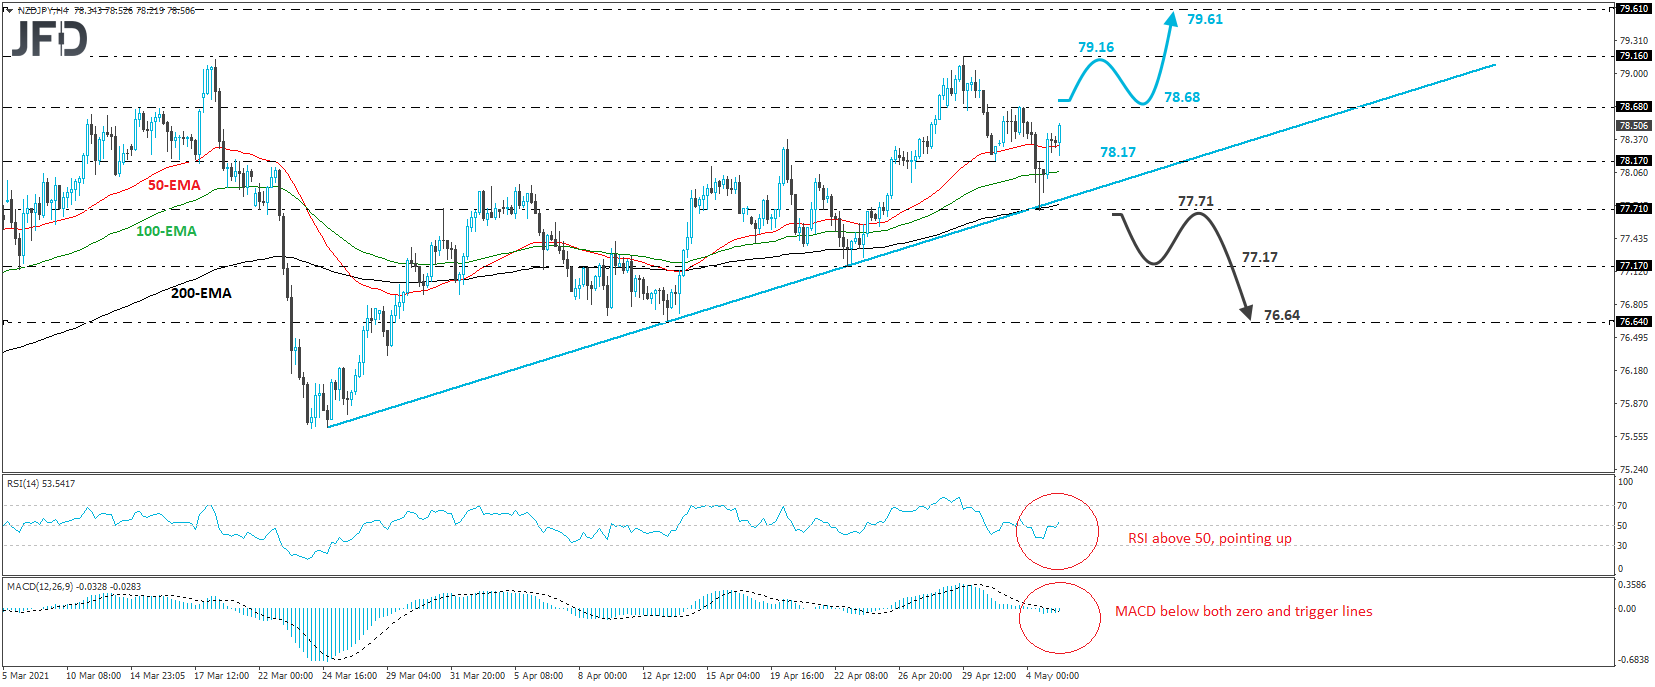 NZD/JPY Rebounds From Upside Support Line